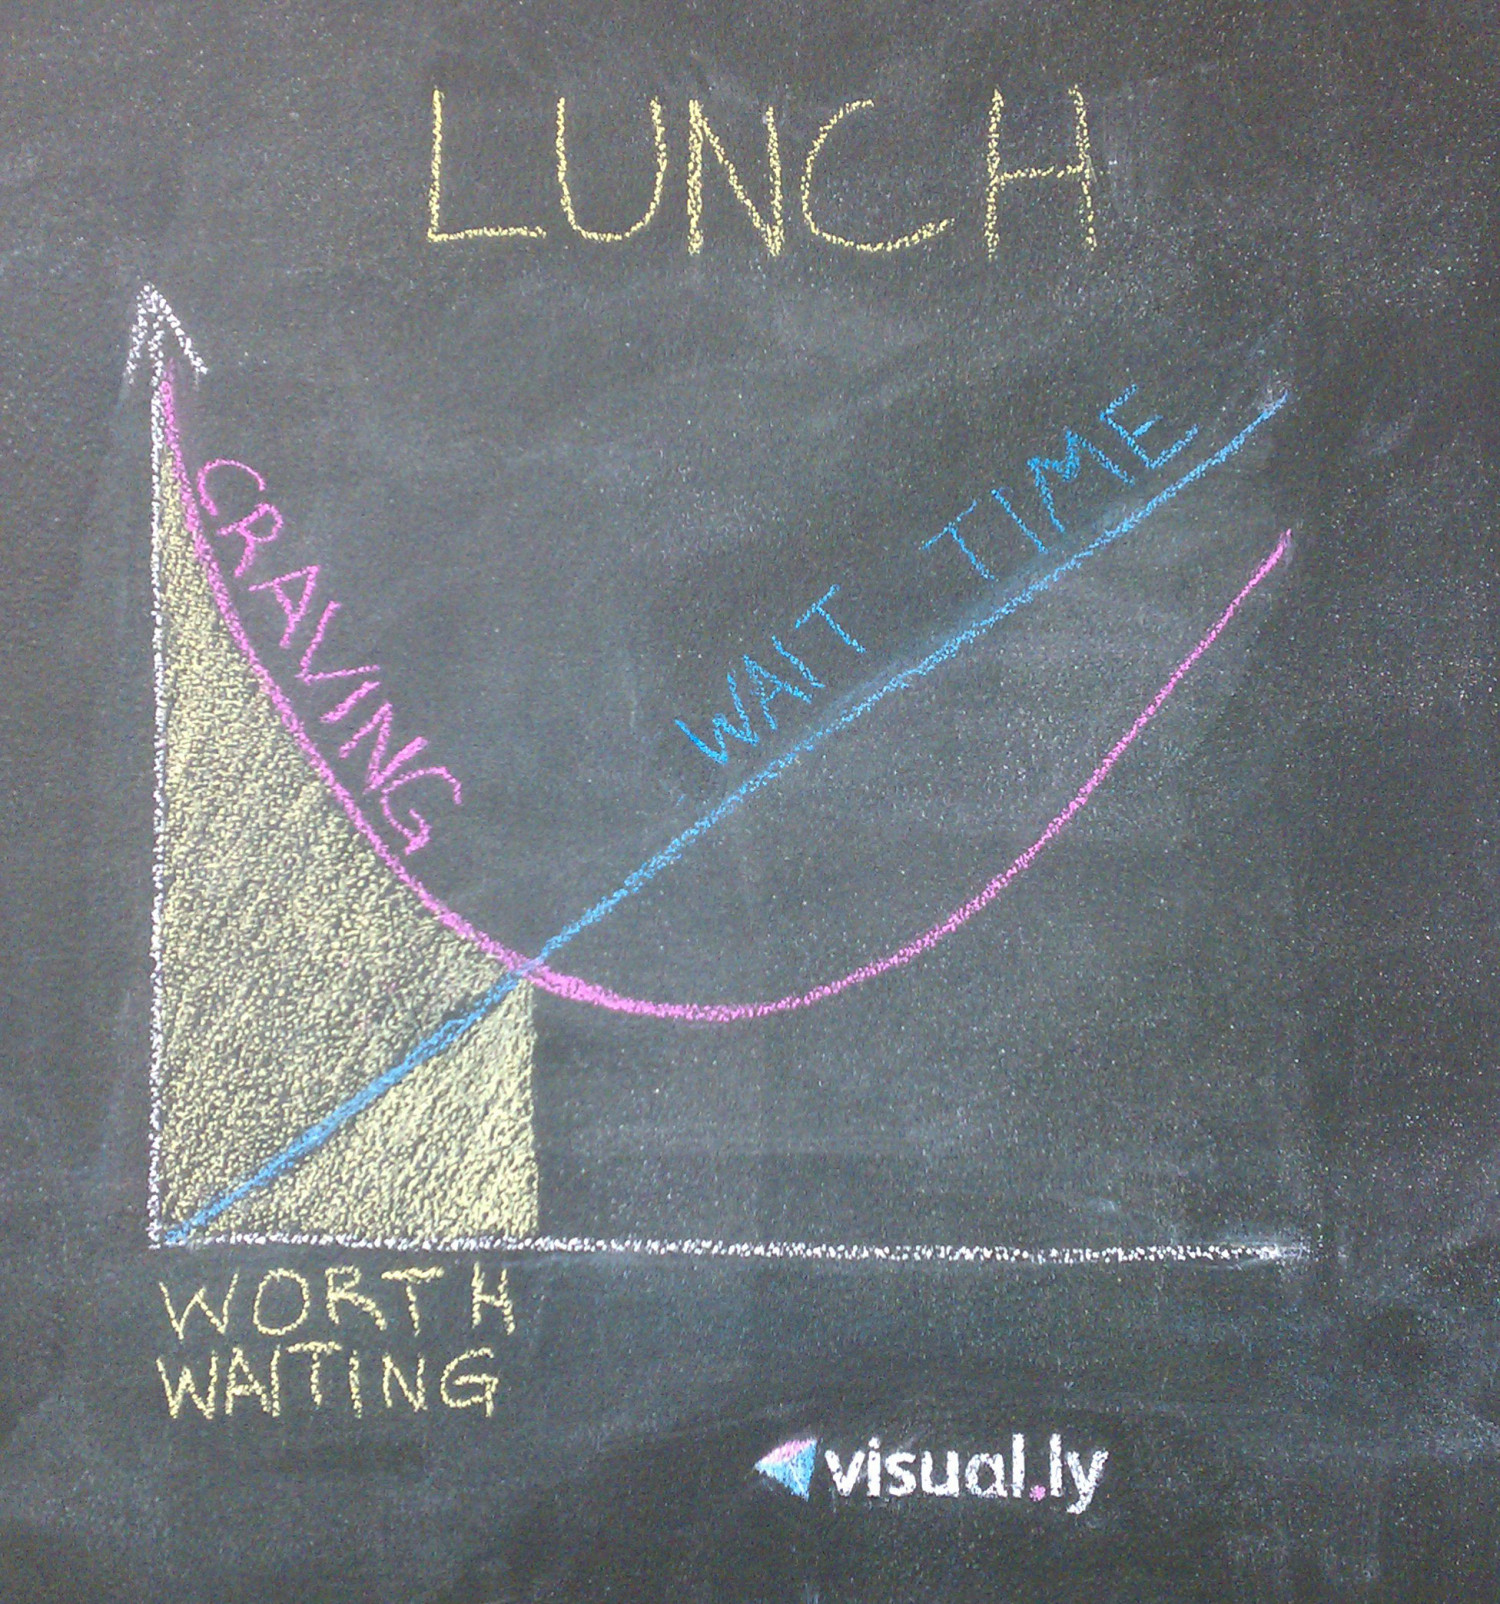 Lunch Infographic